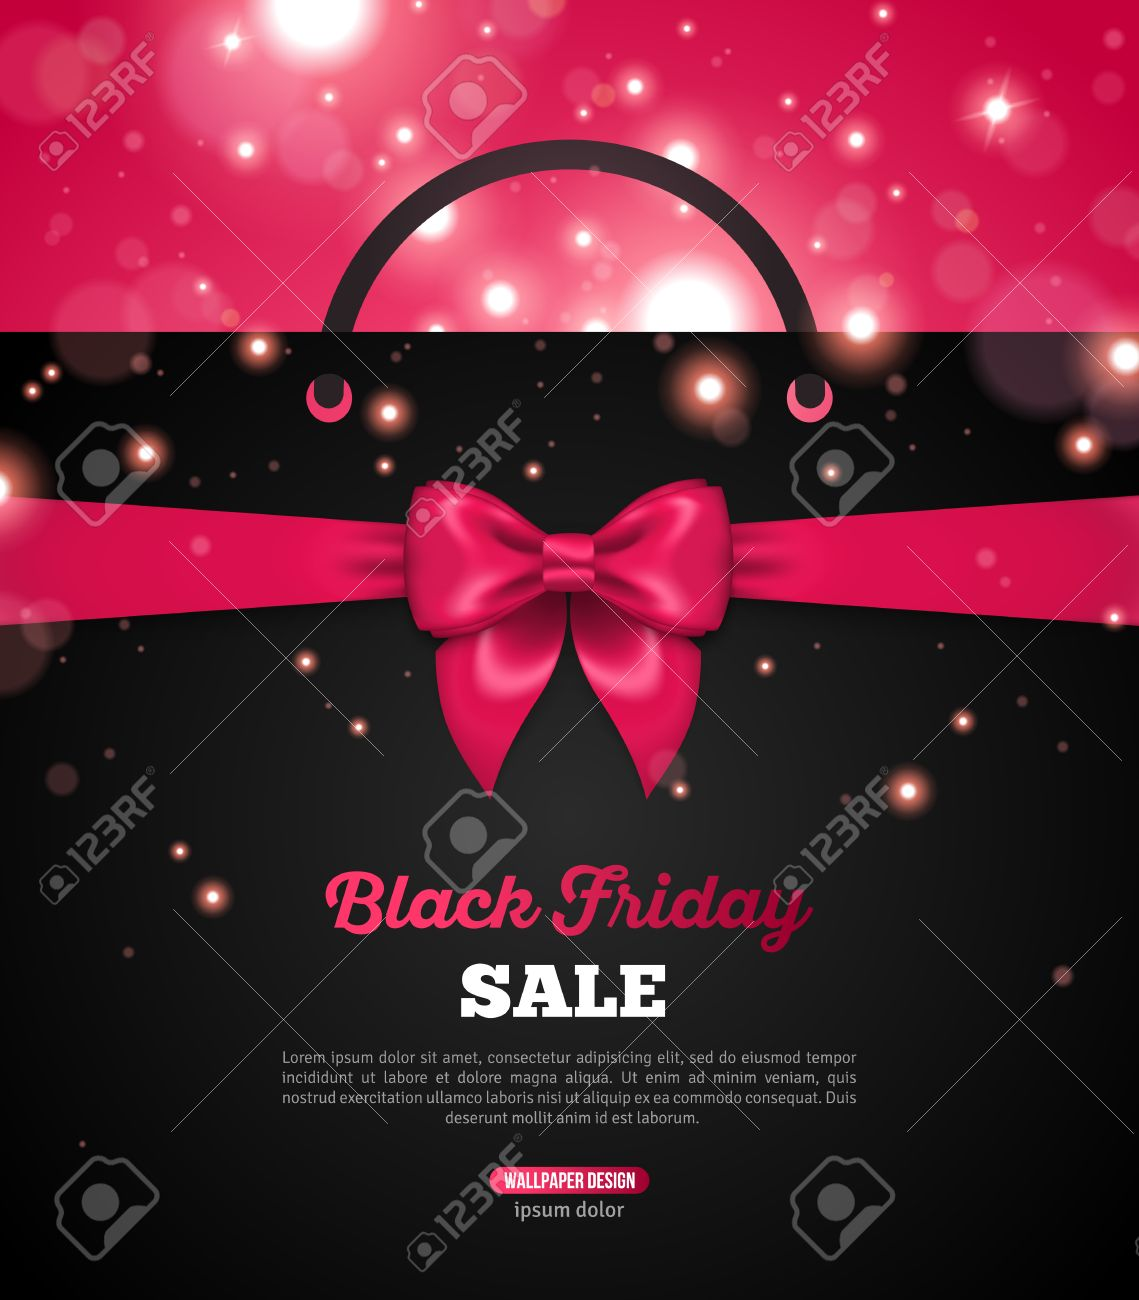 5287075c27 Shining Christmas Total Sale Background. Black Friday Creative Banner with Black  Shopping Bag and Pink Ribbon Bow. Vector Illustration.